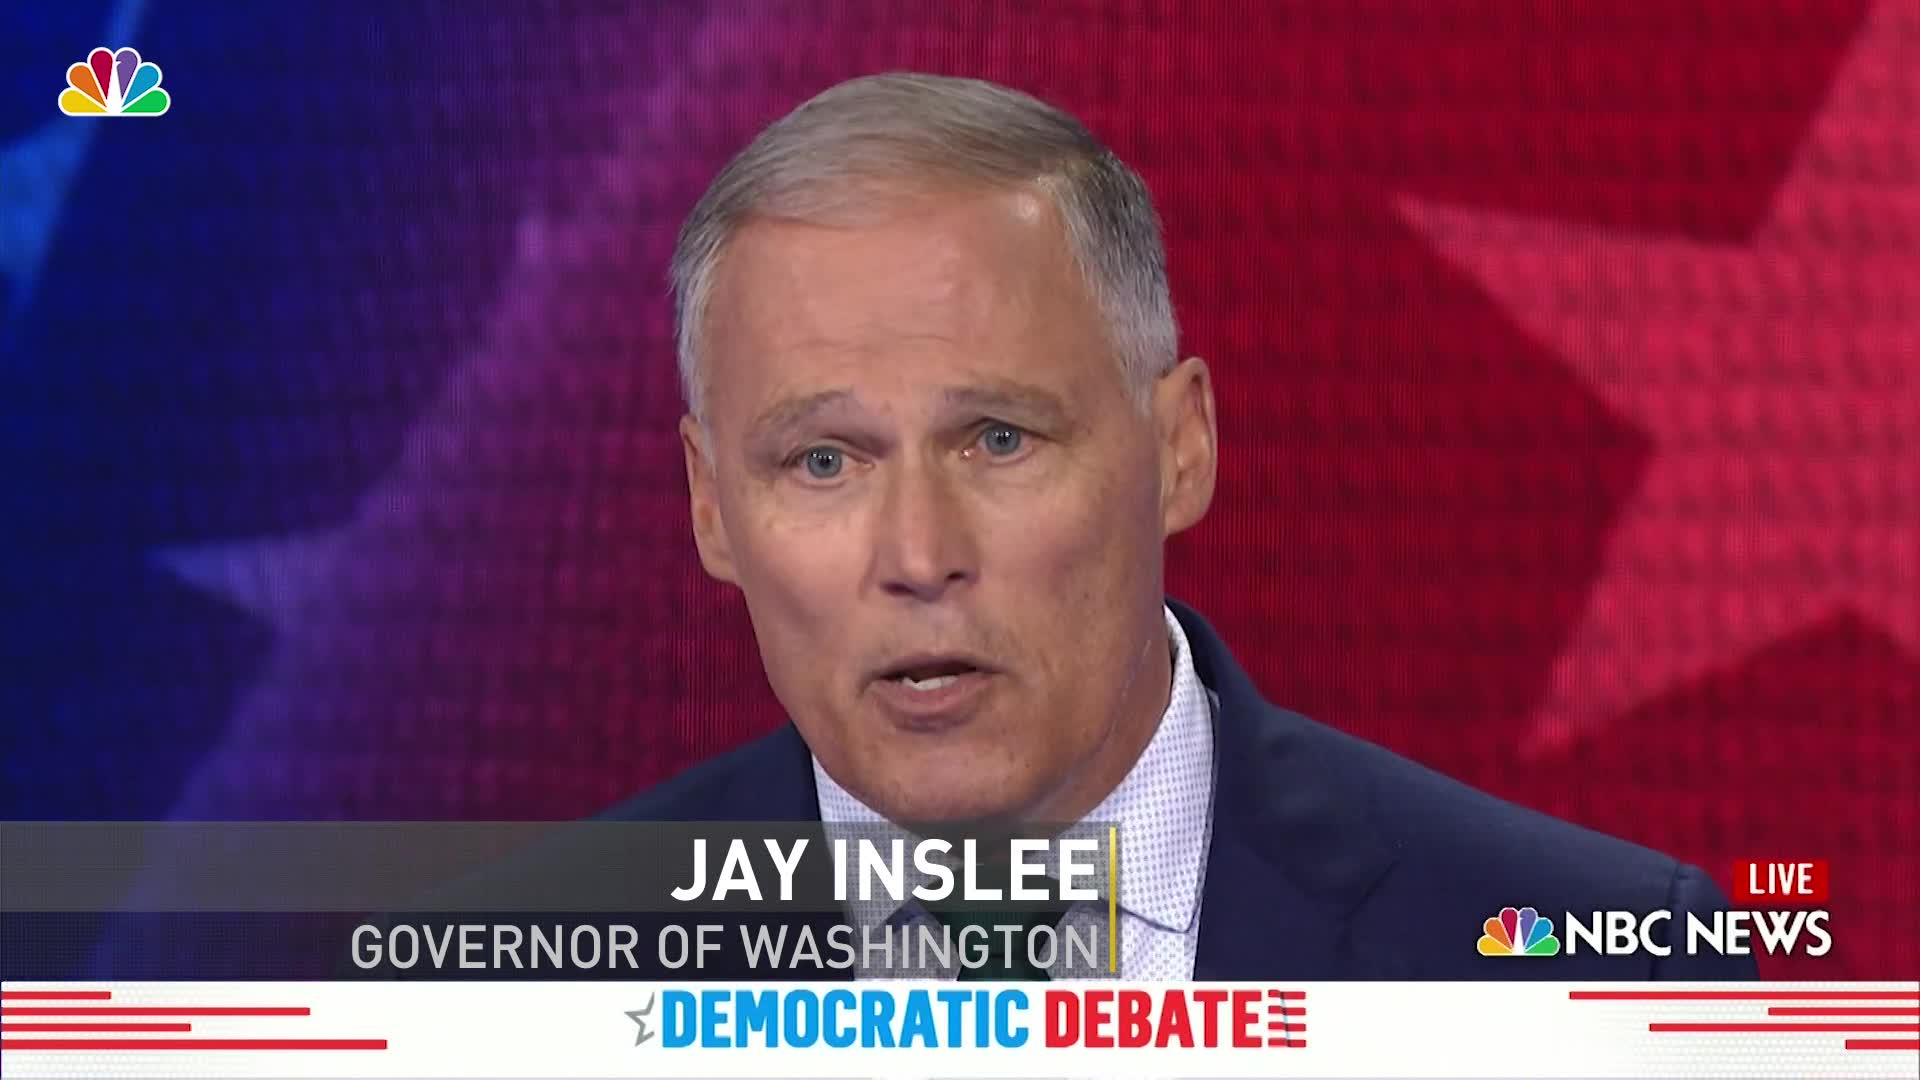 Jay Inslee: 'This is a climate crisis, an emergency, and it is our last chance... to do something about it'